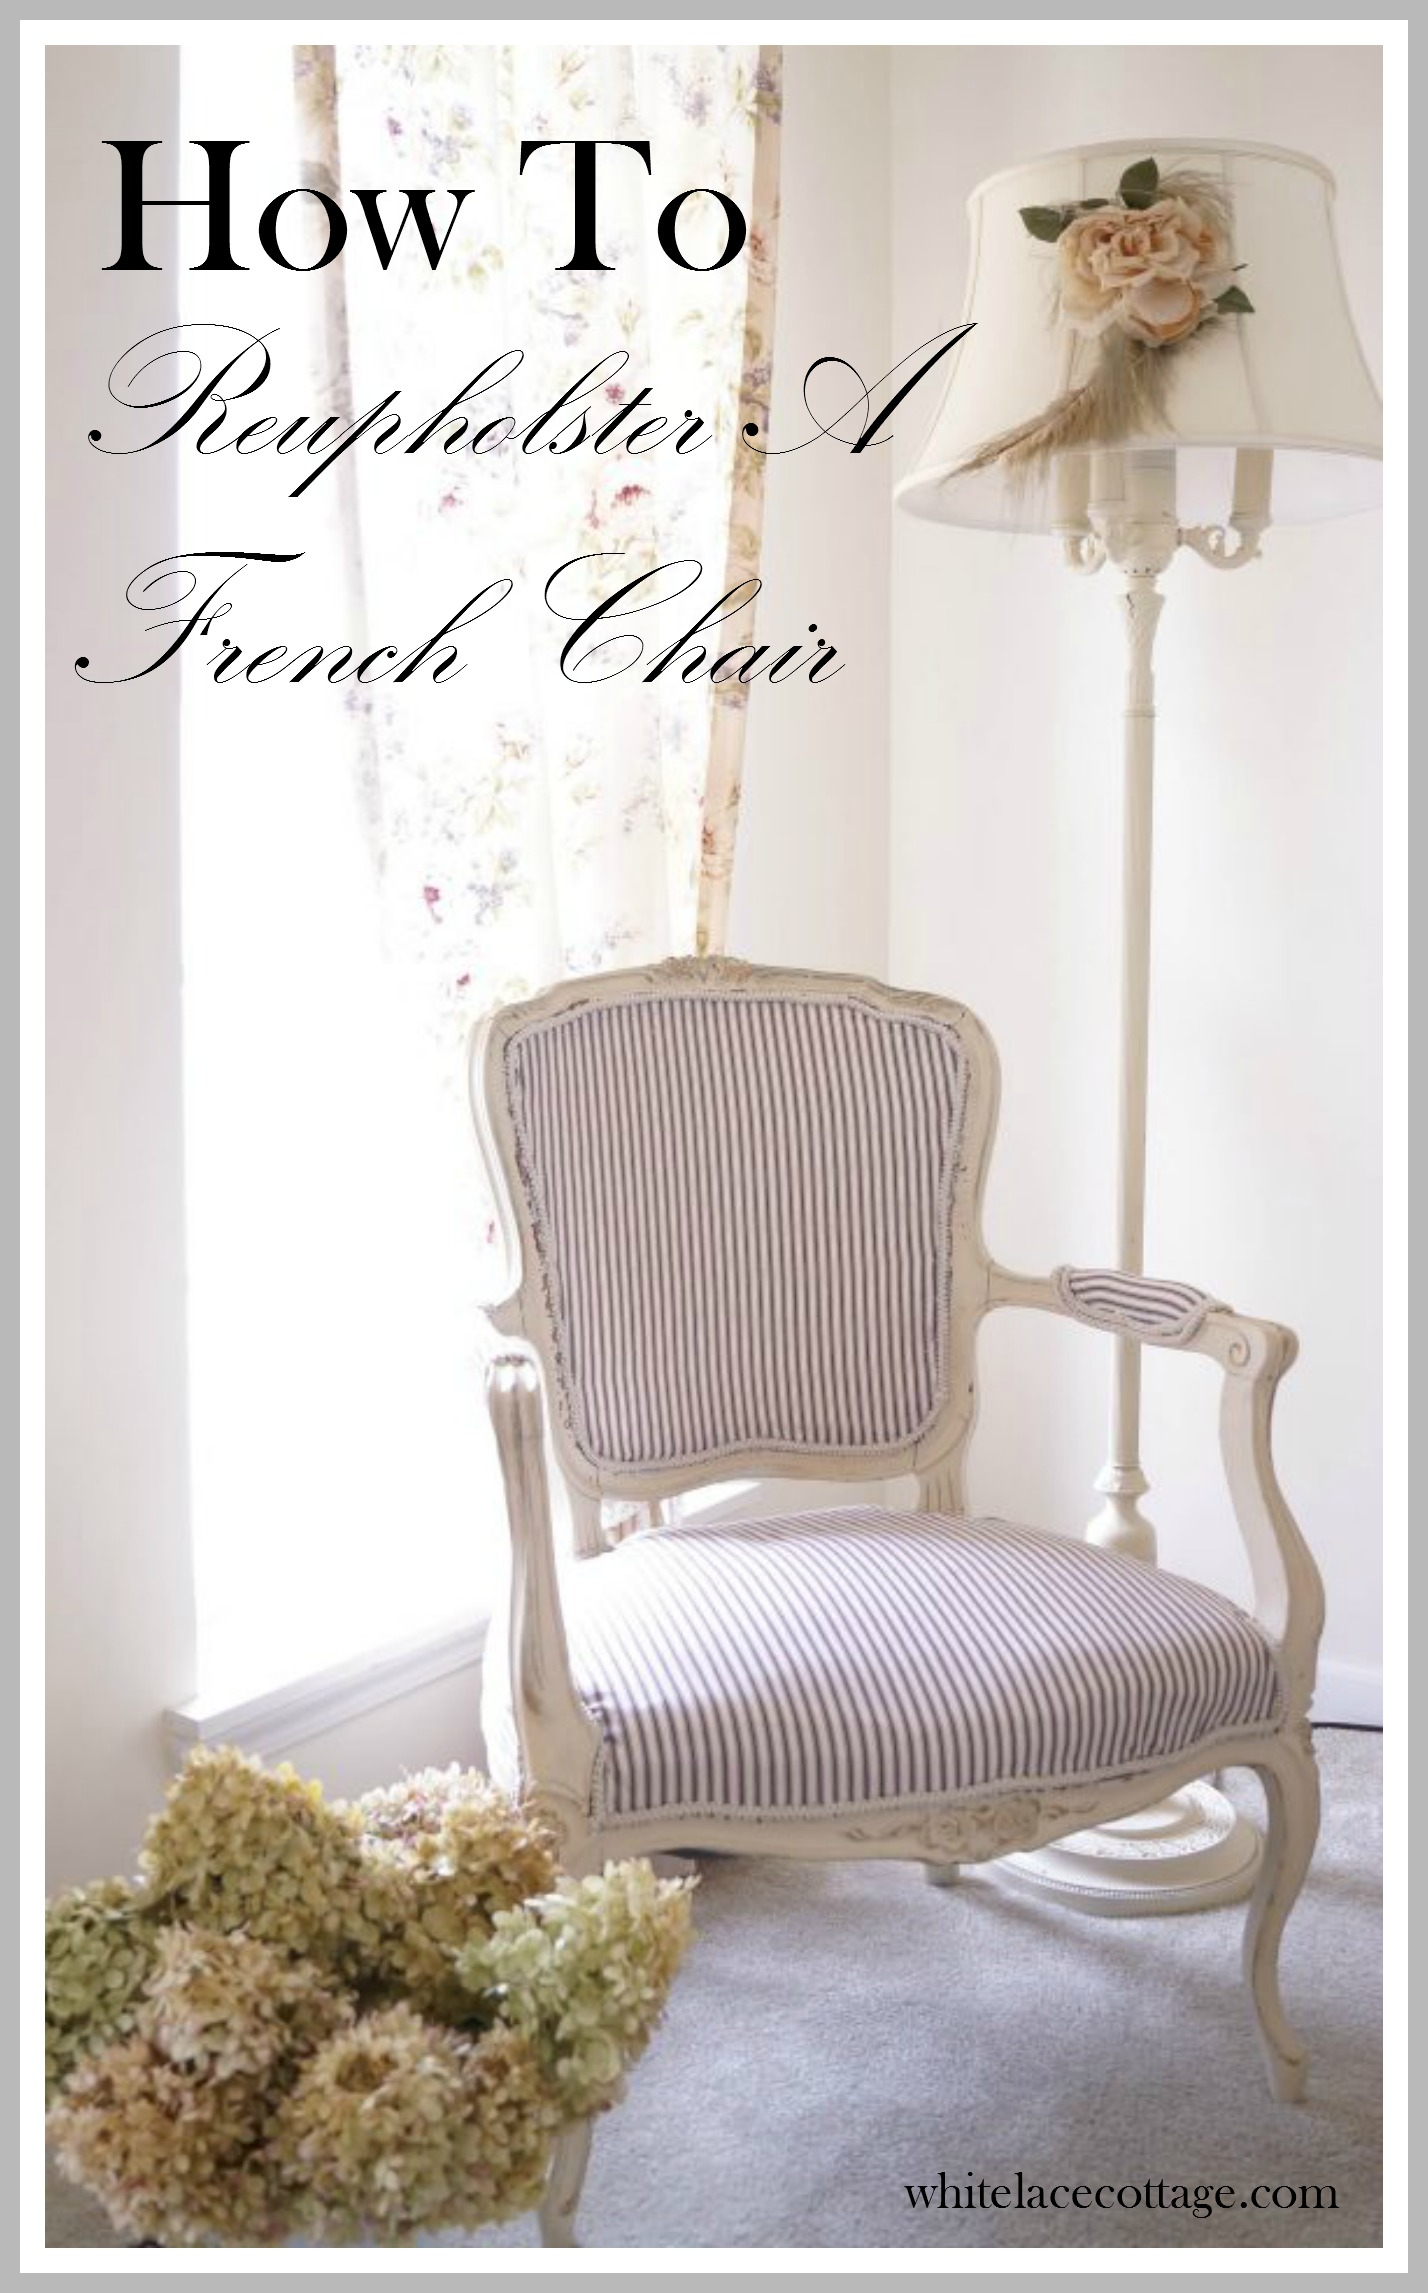 reupholster leather sofa diy au sleeper macy how to easily a french chair white lace cottage